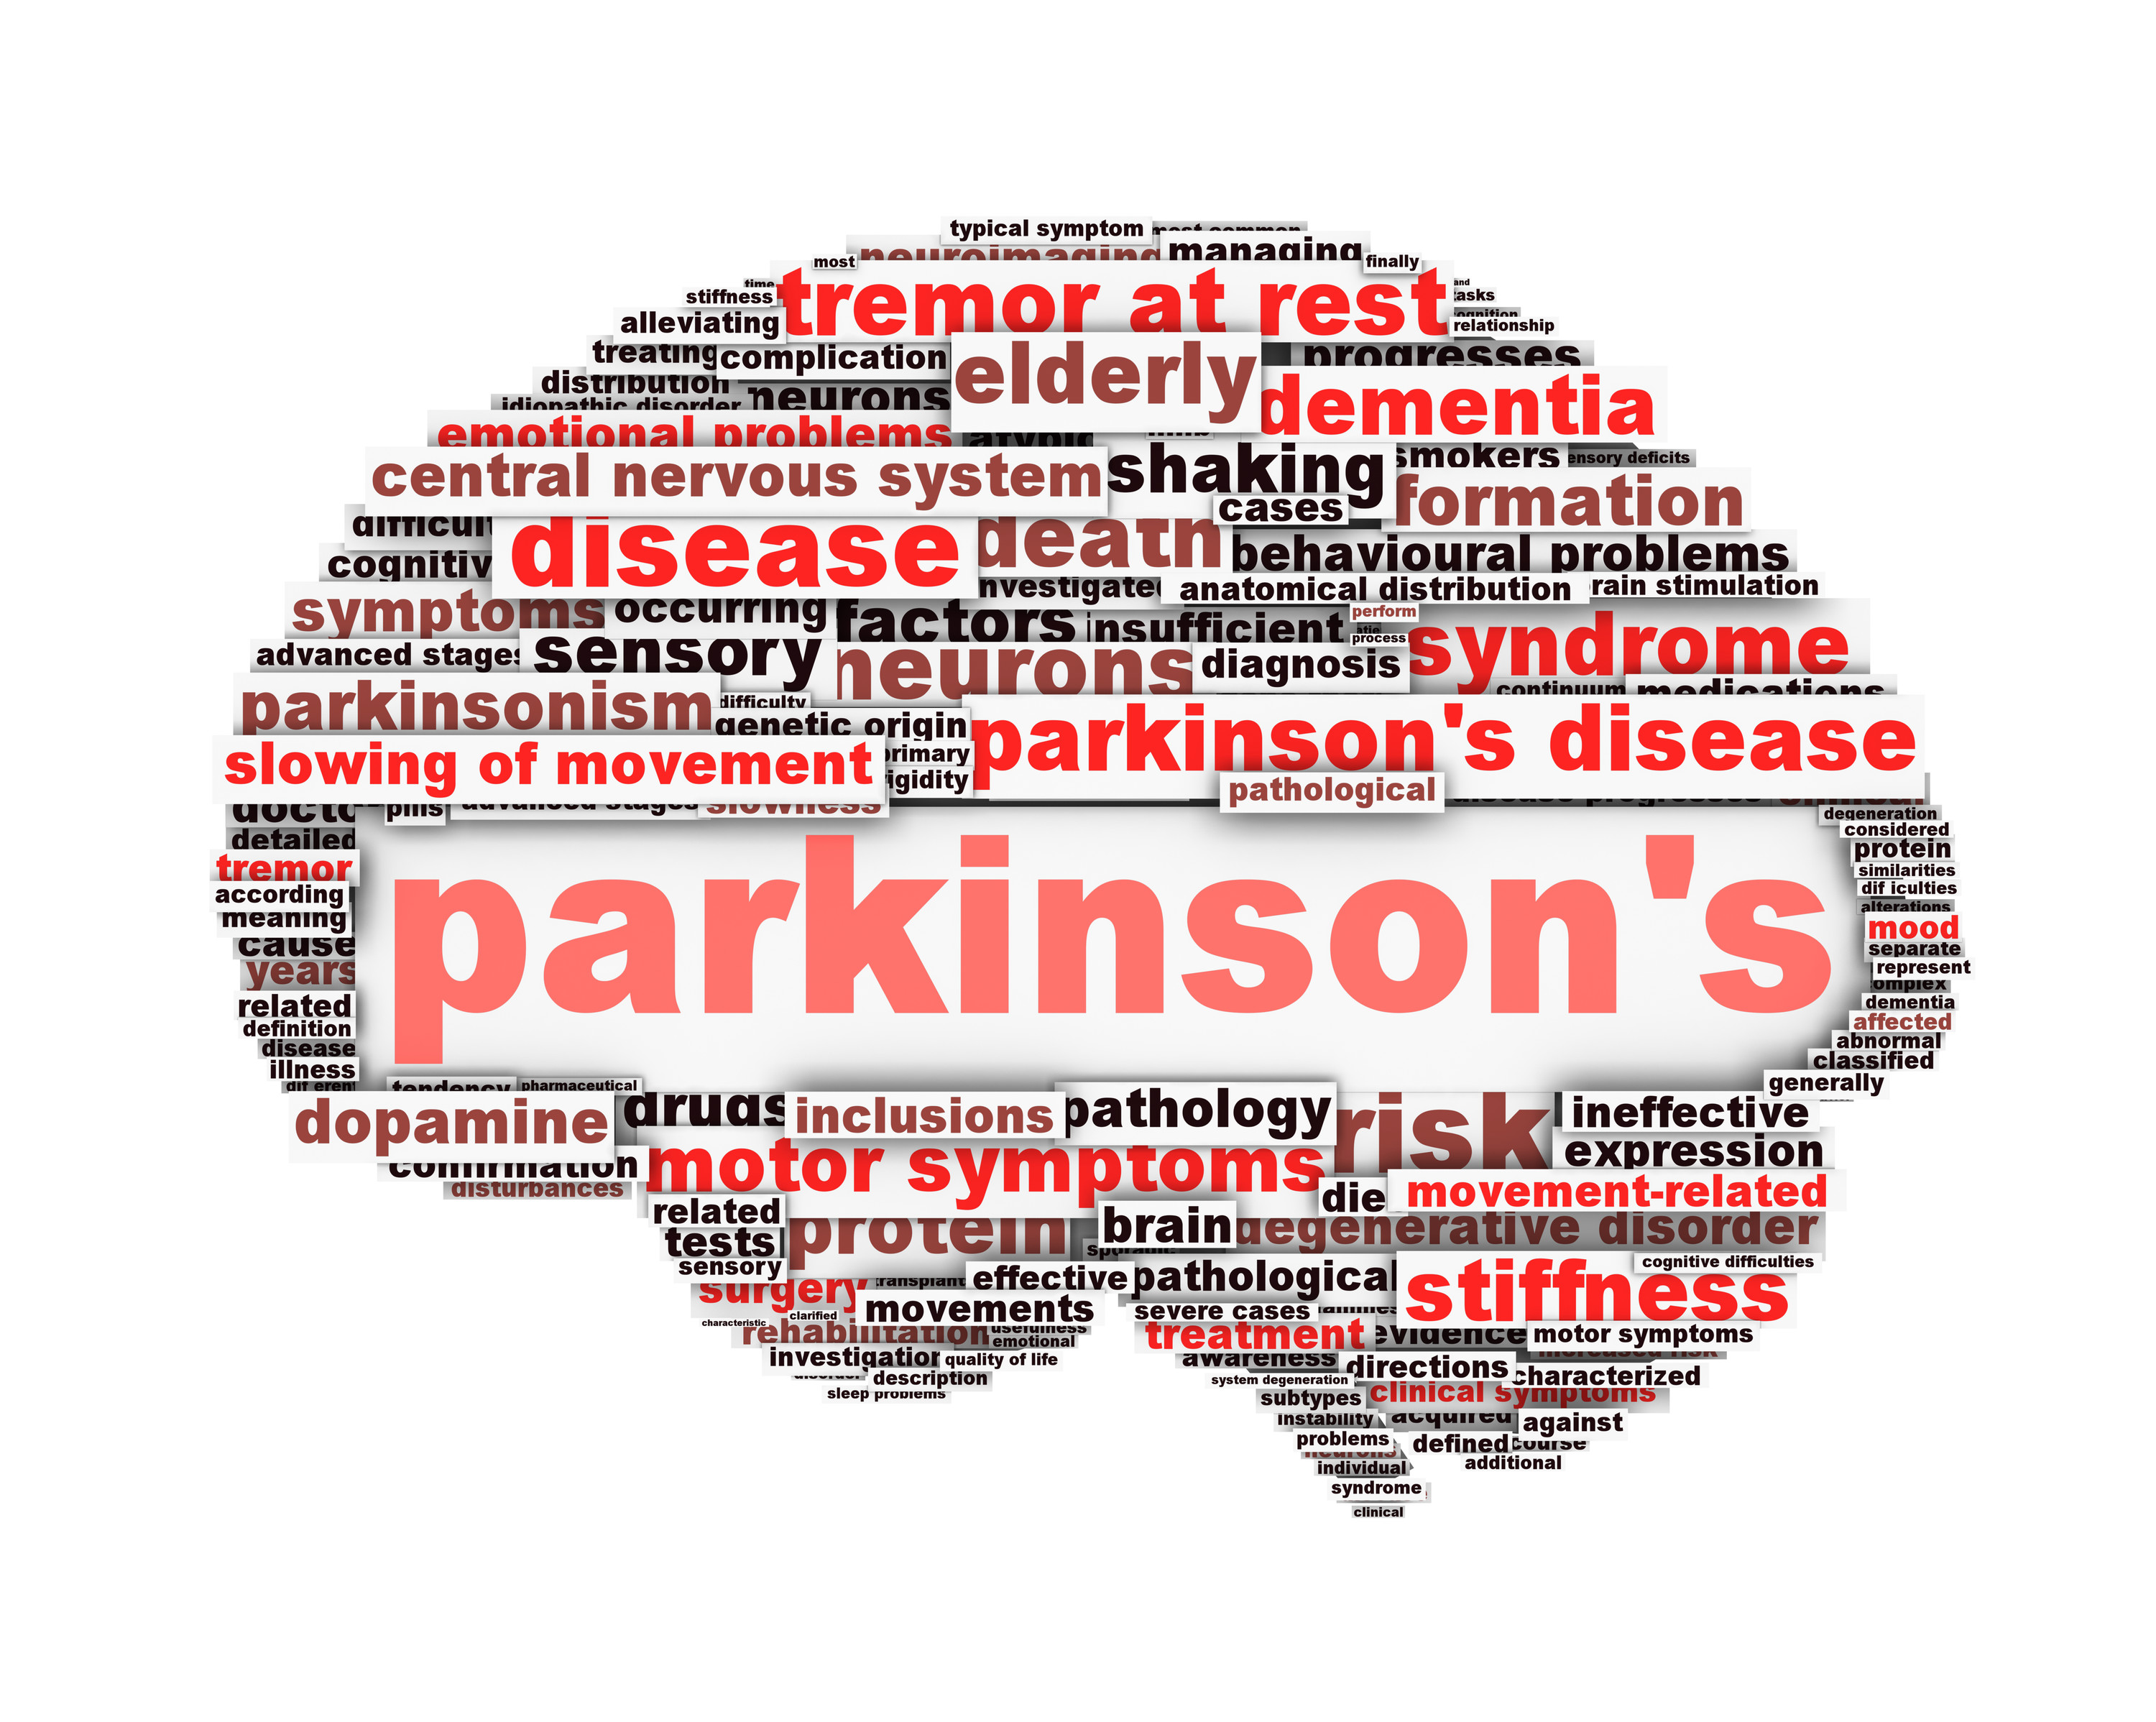 Parkinson's Disease: Potential Healing from Stem Cell Therapy